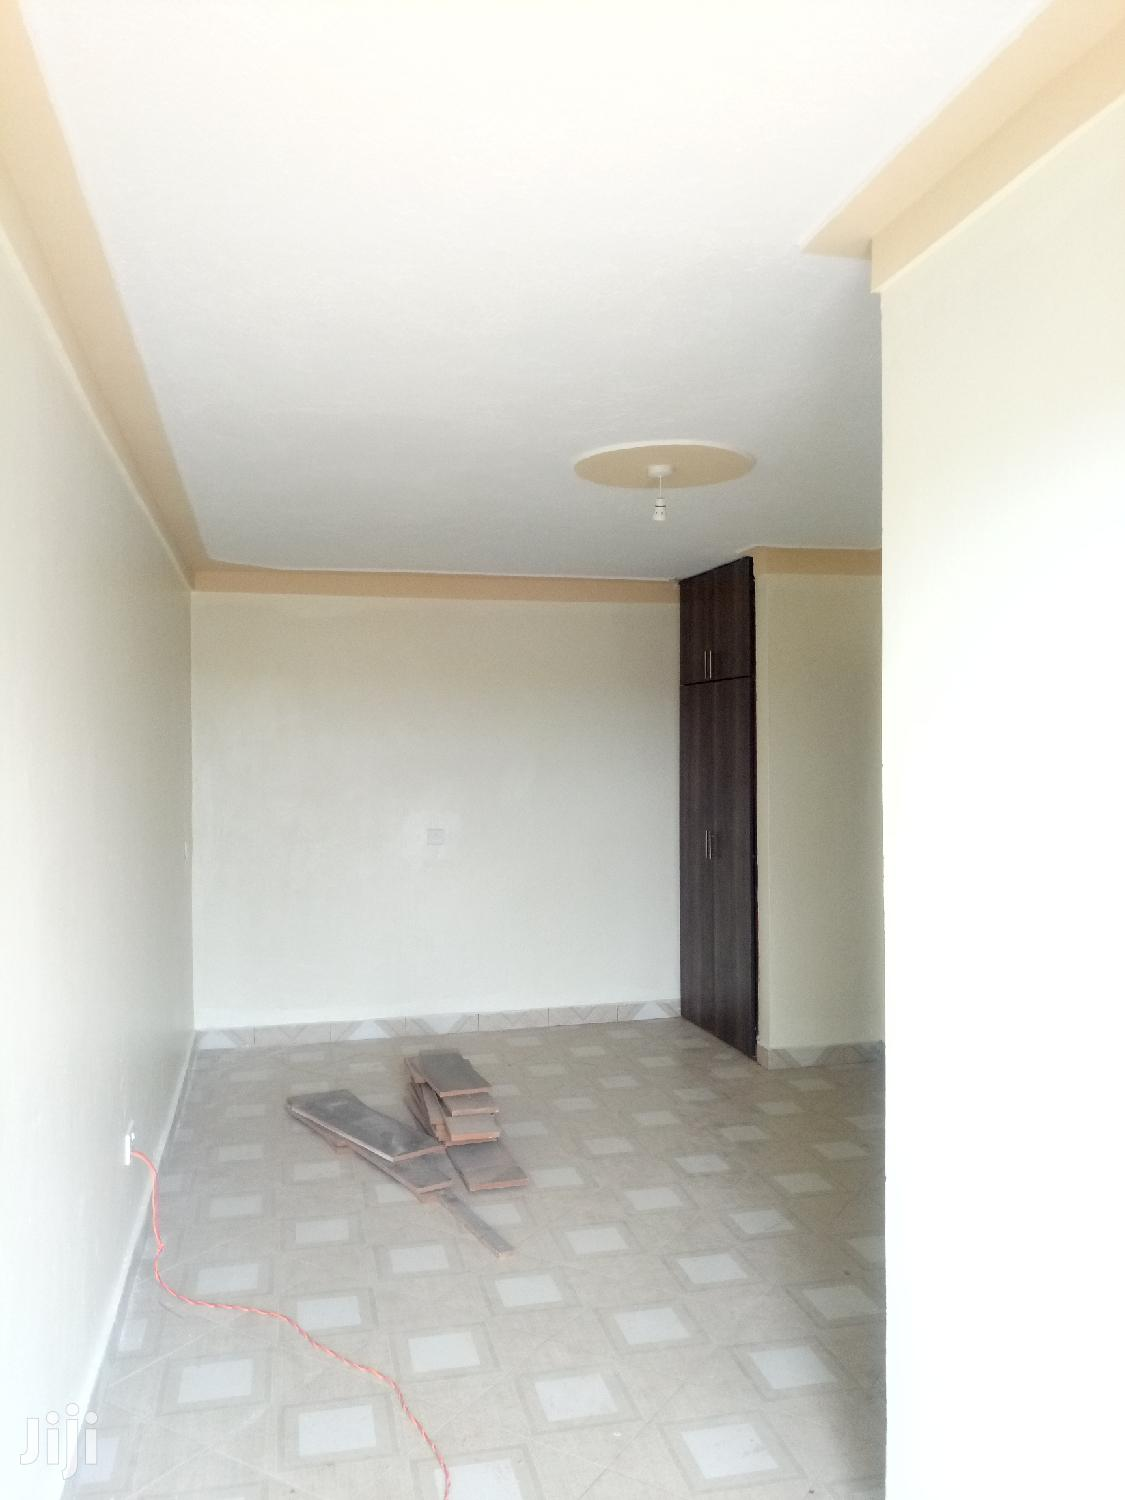 Mutungo Brand New Studio Single Room Apartment for Rent | Houses & Apartments For Rent for sale in Kampala, Central Region, Uganda